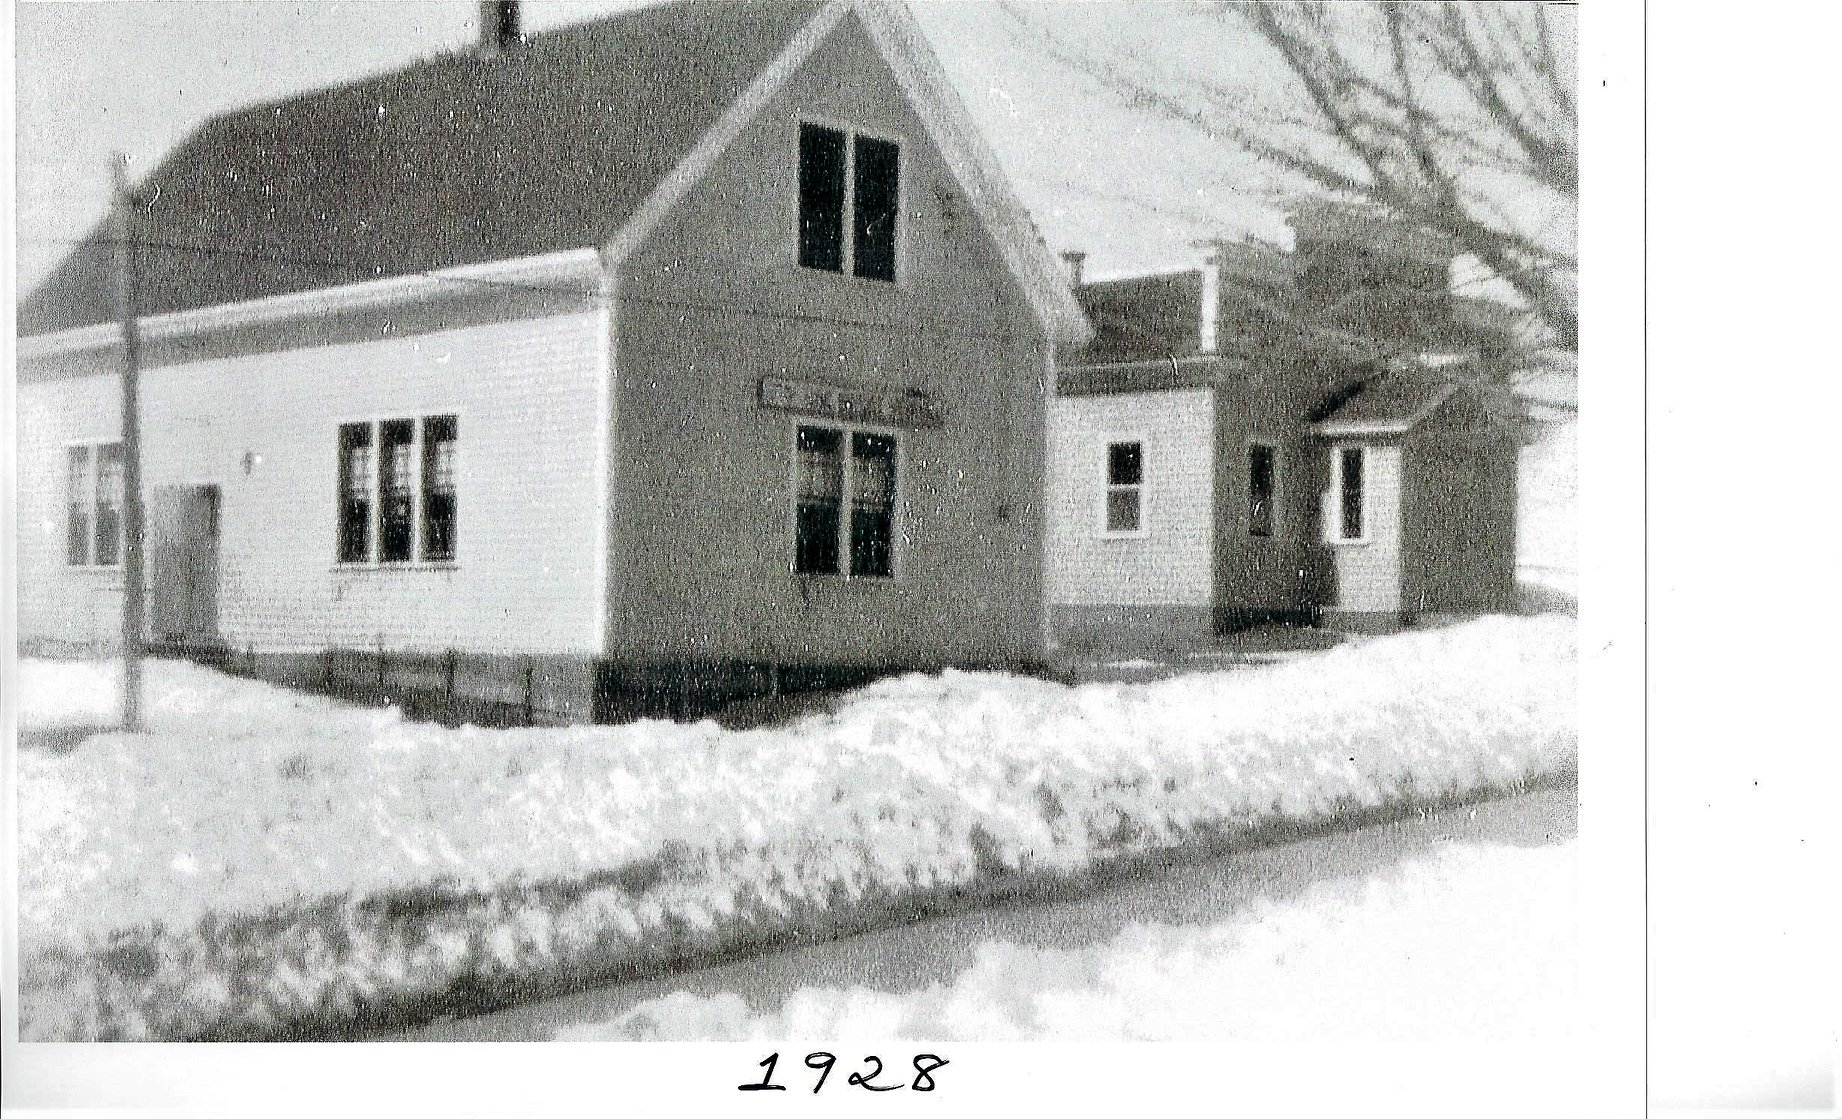 A view of Fortune Hall, as it sat adjacent to the old schoolhouse. Date on image is incorrect.